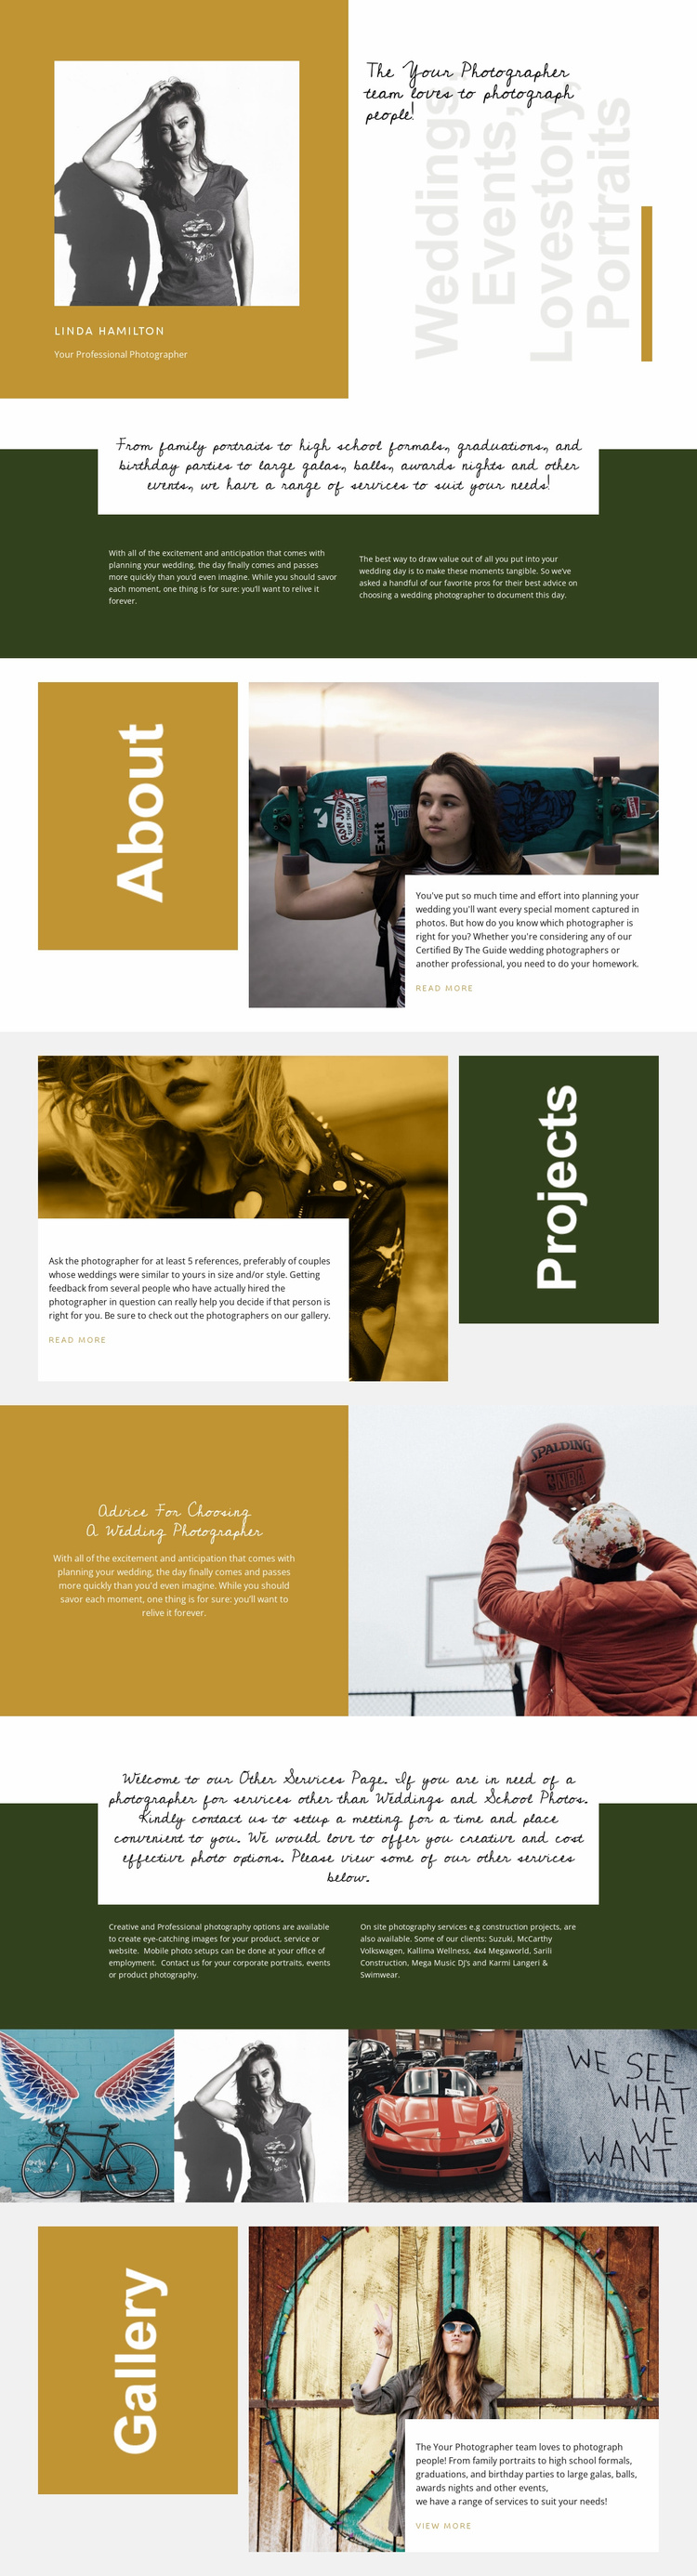 Fashion photography courses Website Template